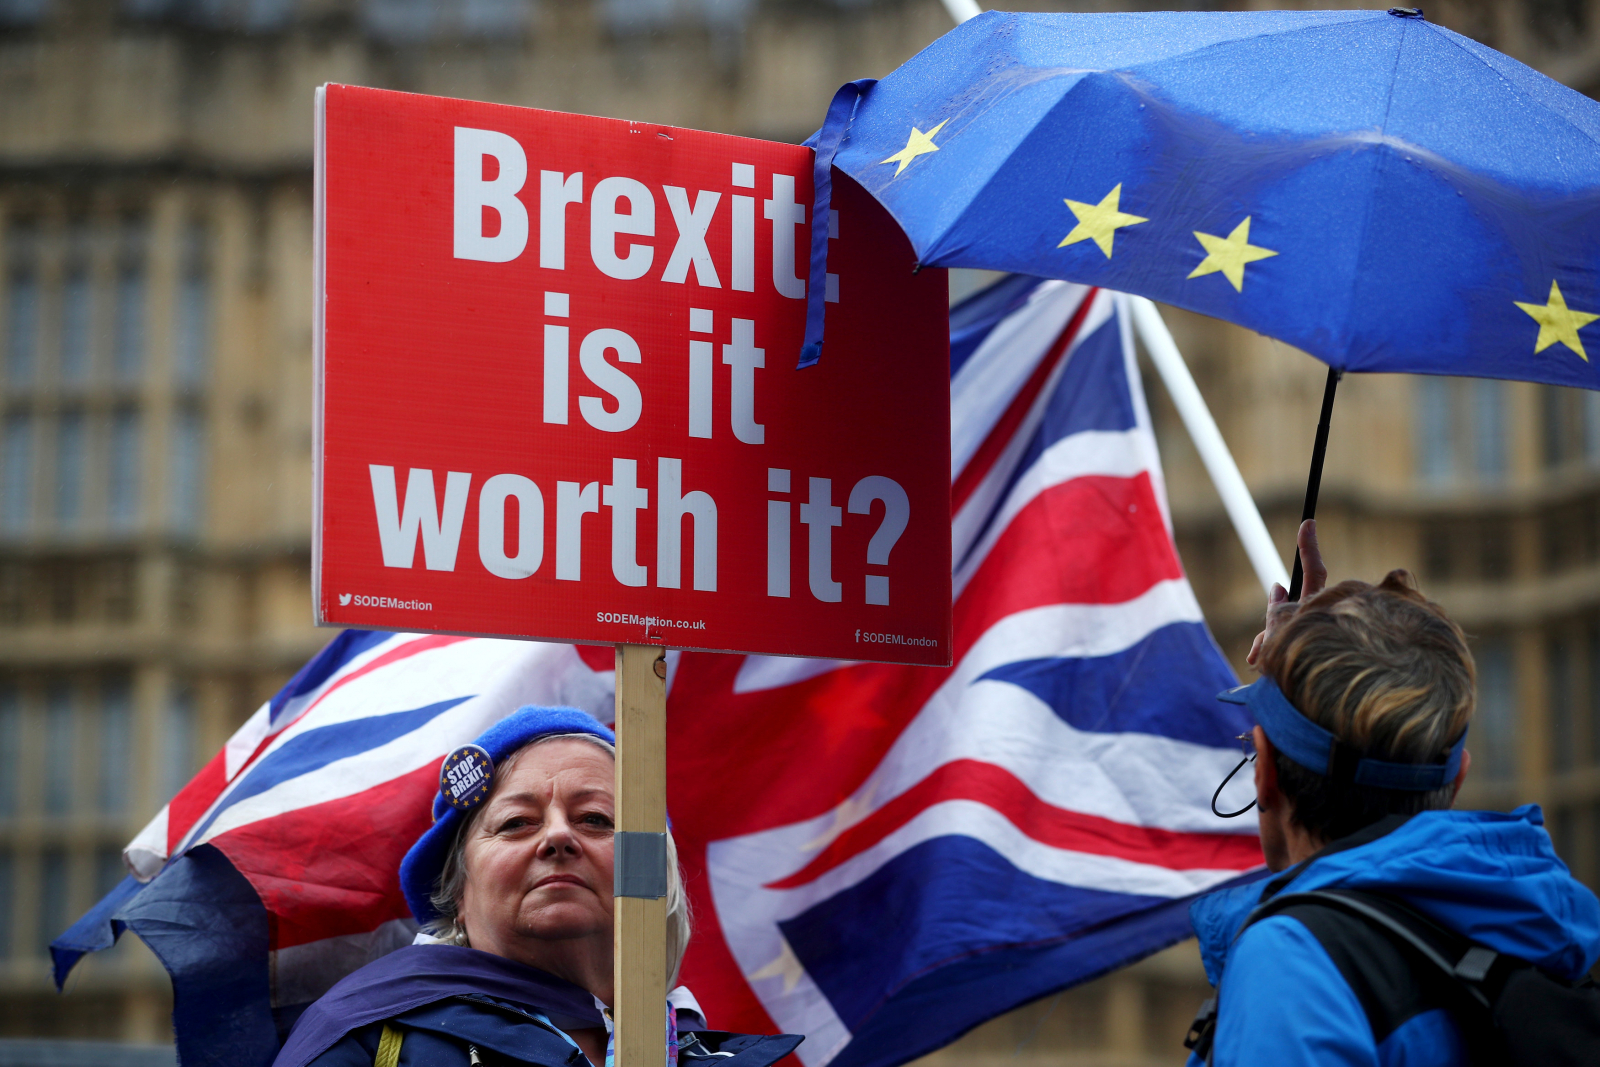 Anti-Brexit protests